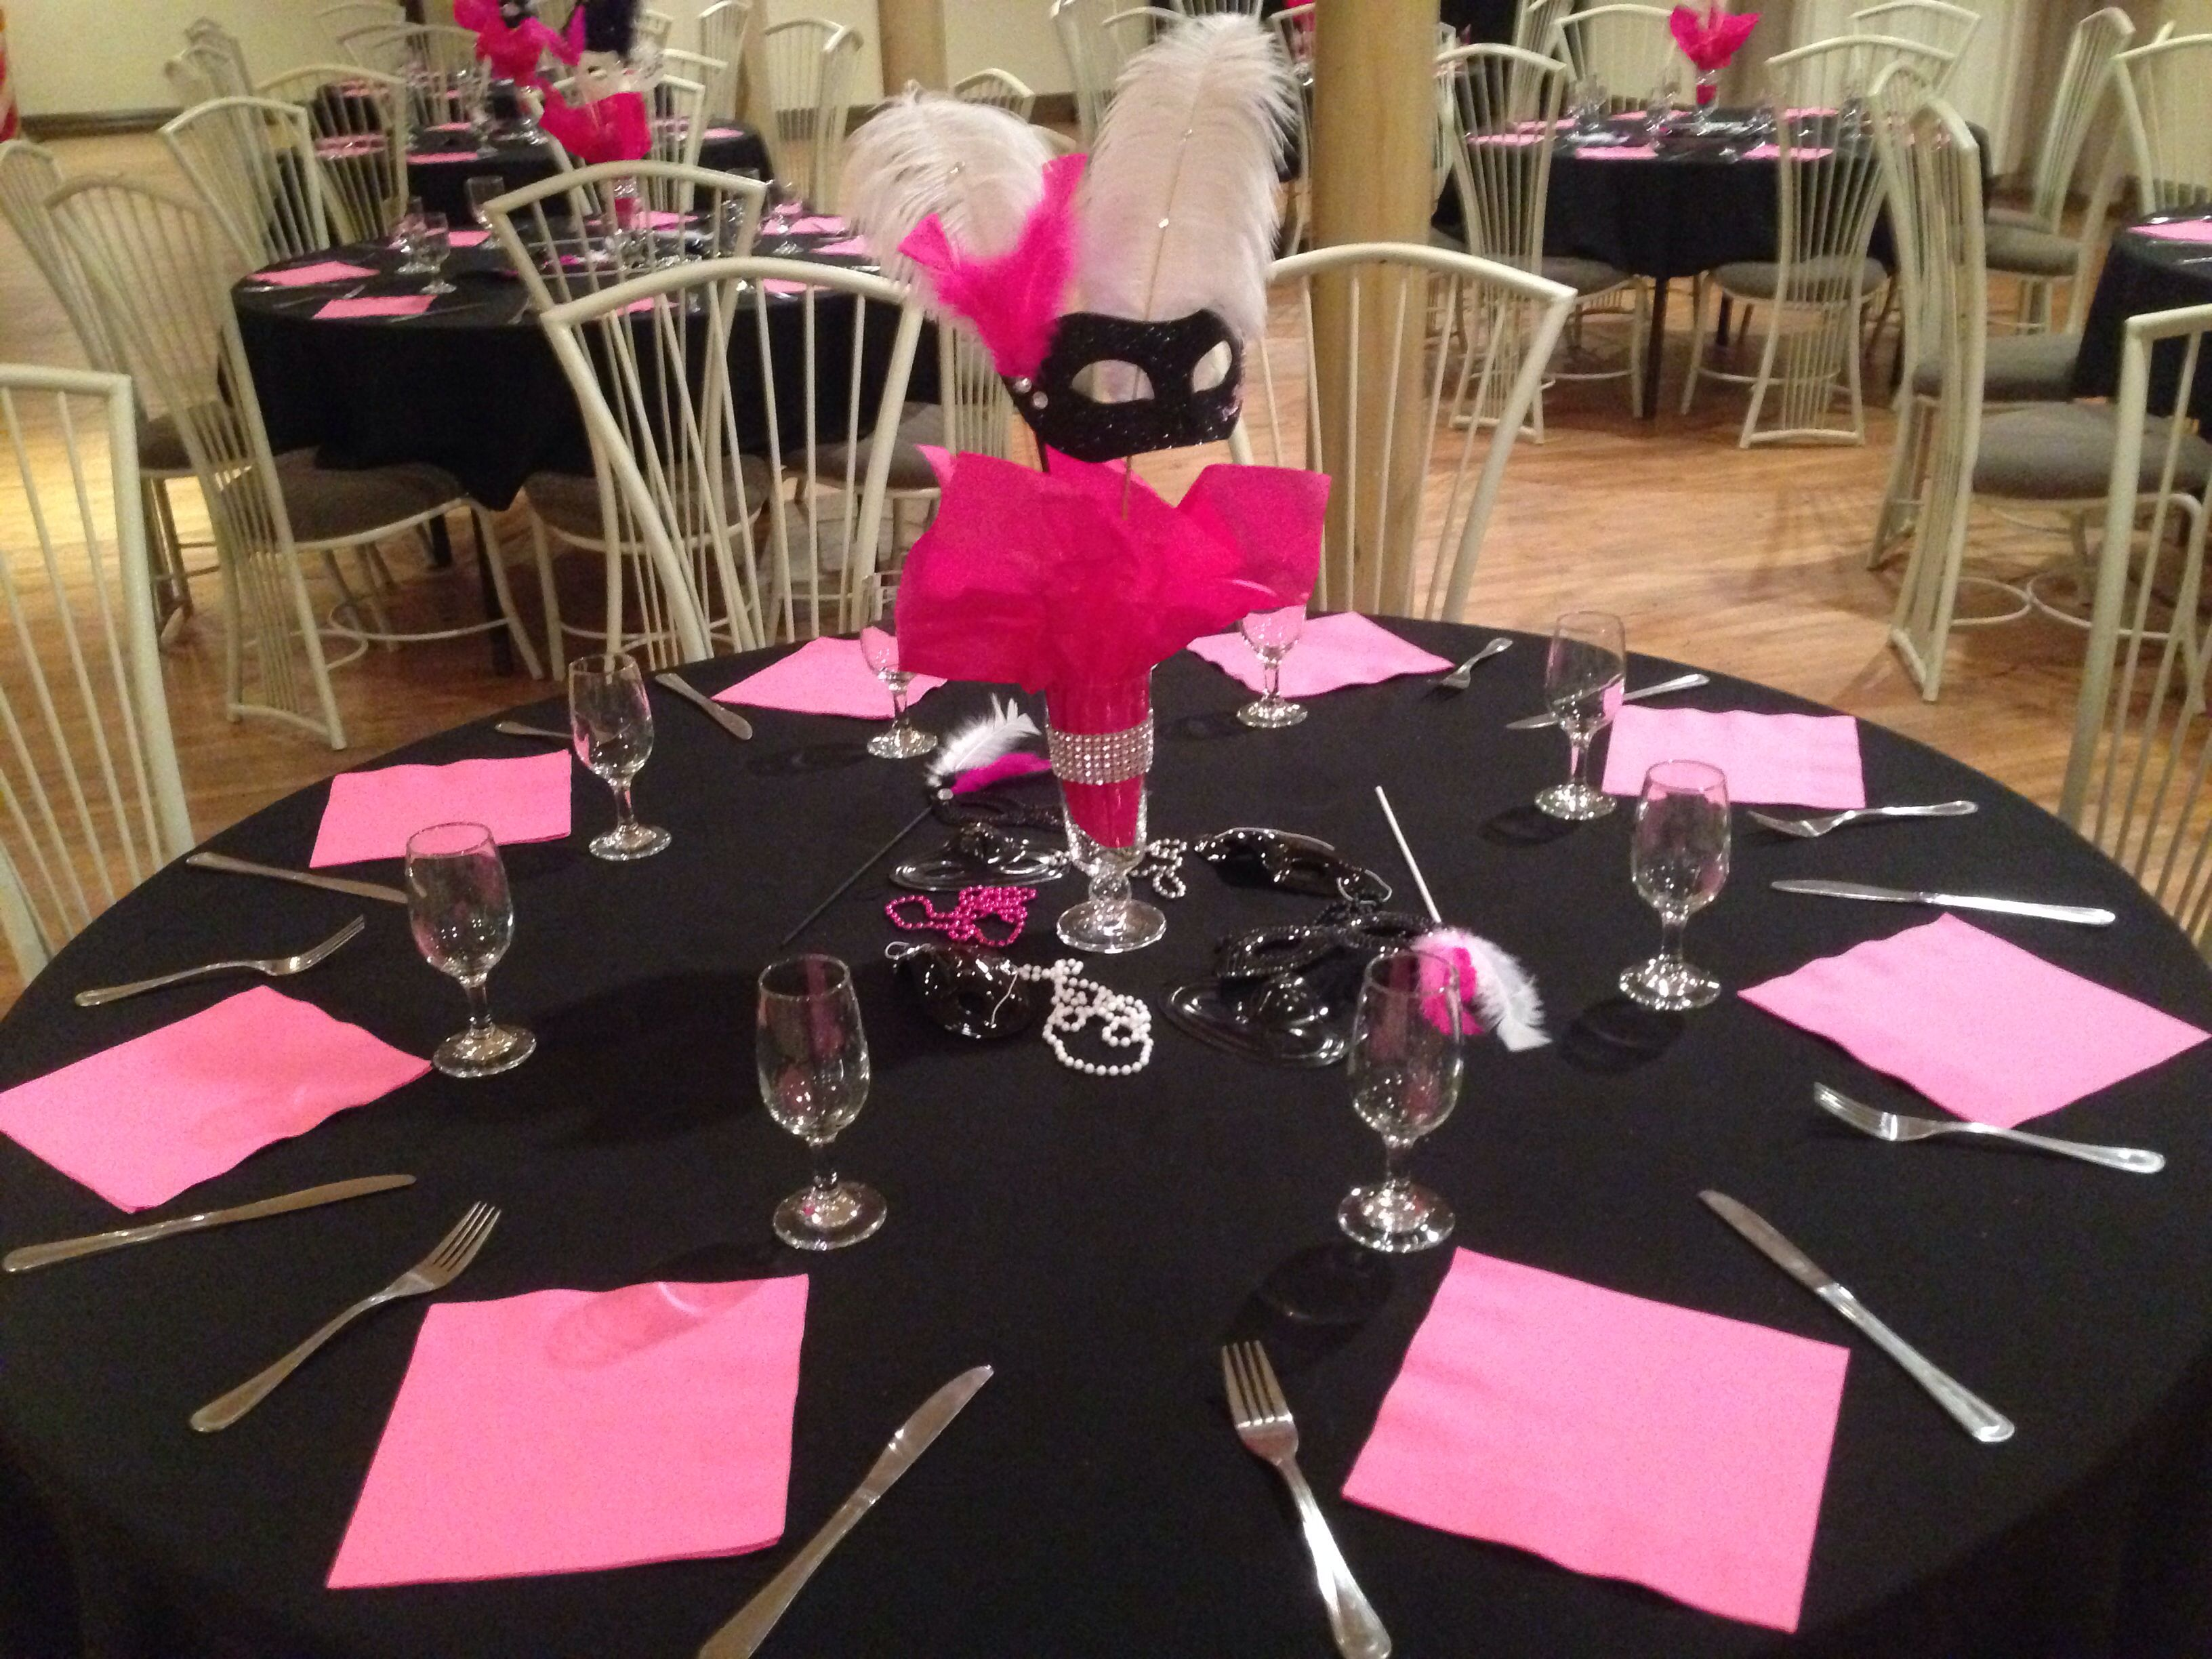 Masquerade Ball Party Decorations 52 Best Masquerade Party Images On Pinterest  Mask Party